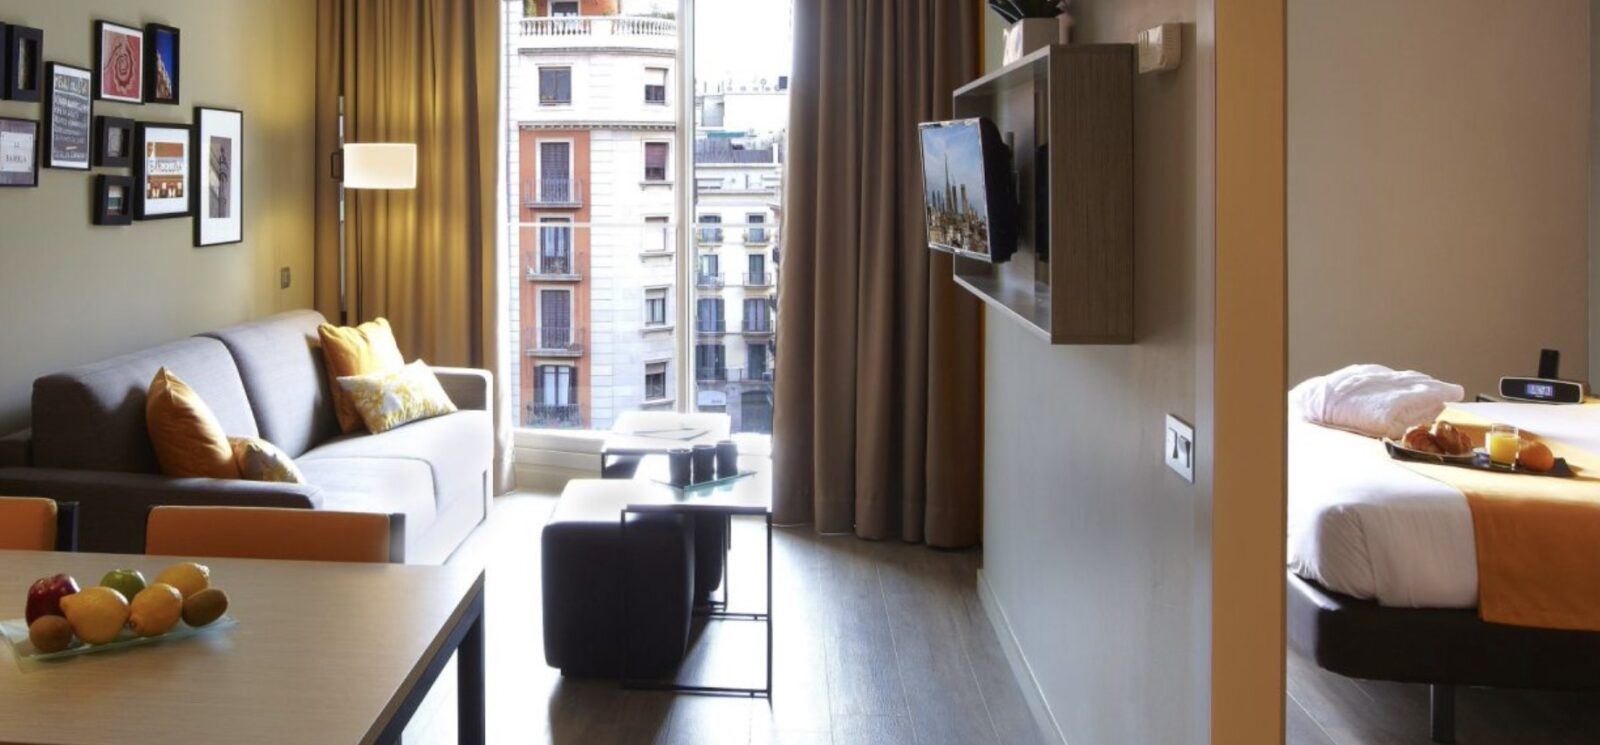 Citadines Ramblas Barcelona aparthotels in Barcelona room with view over city